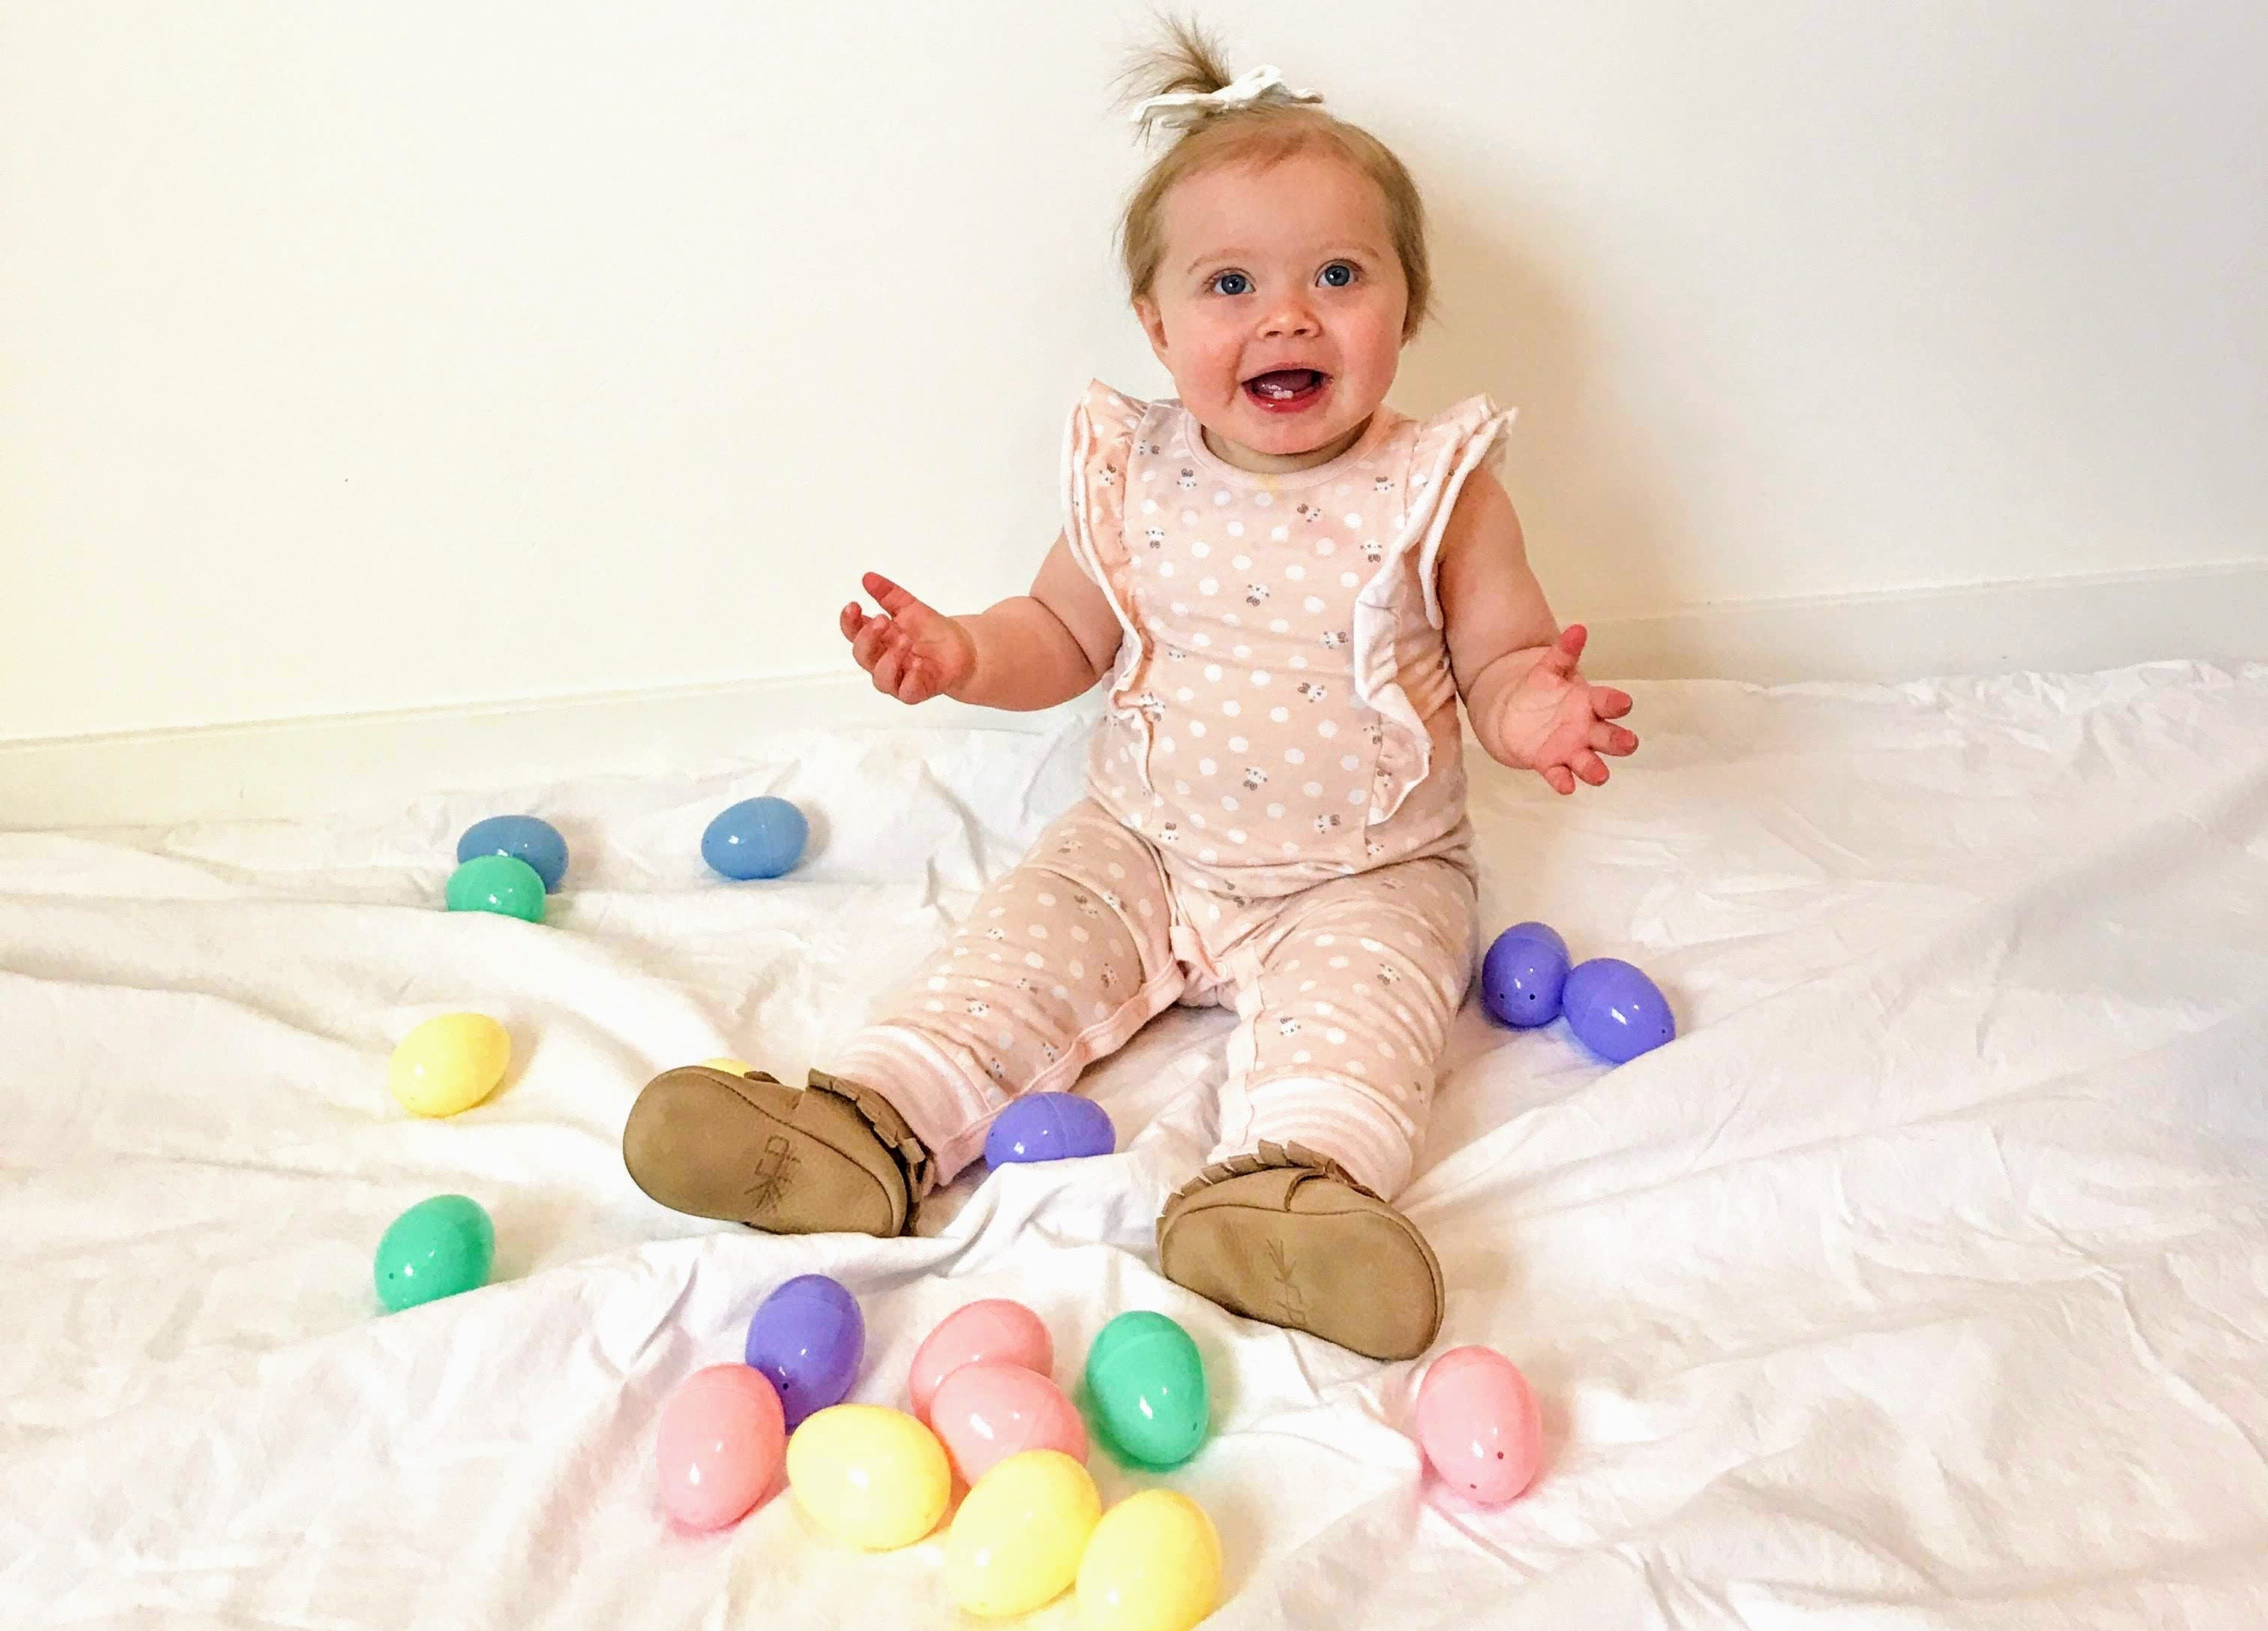 Infant surrounded by East eggs posing for photo